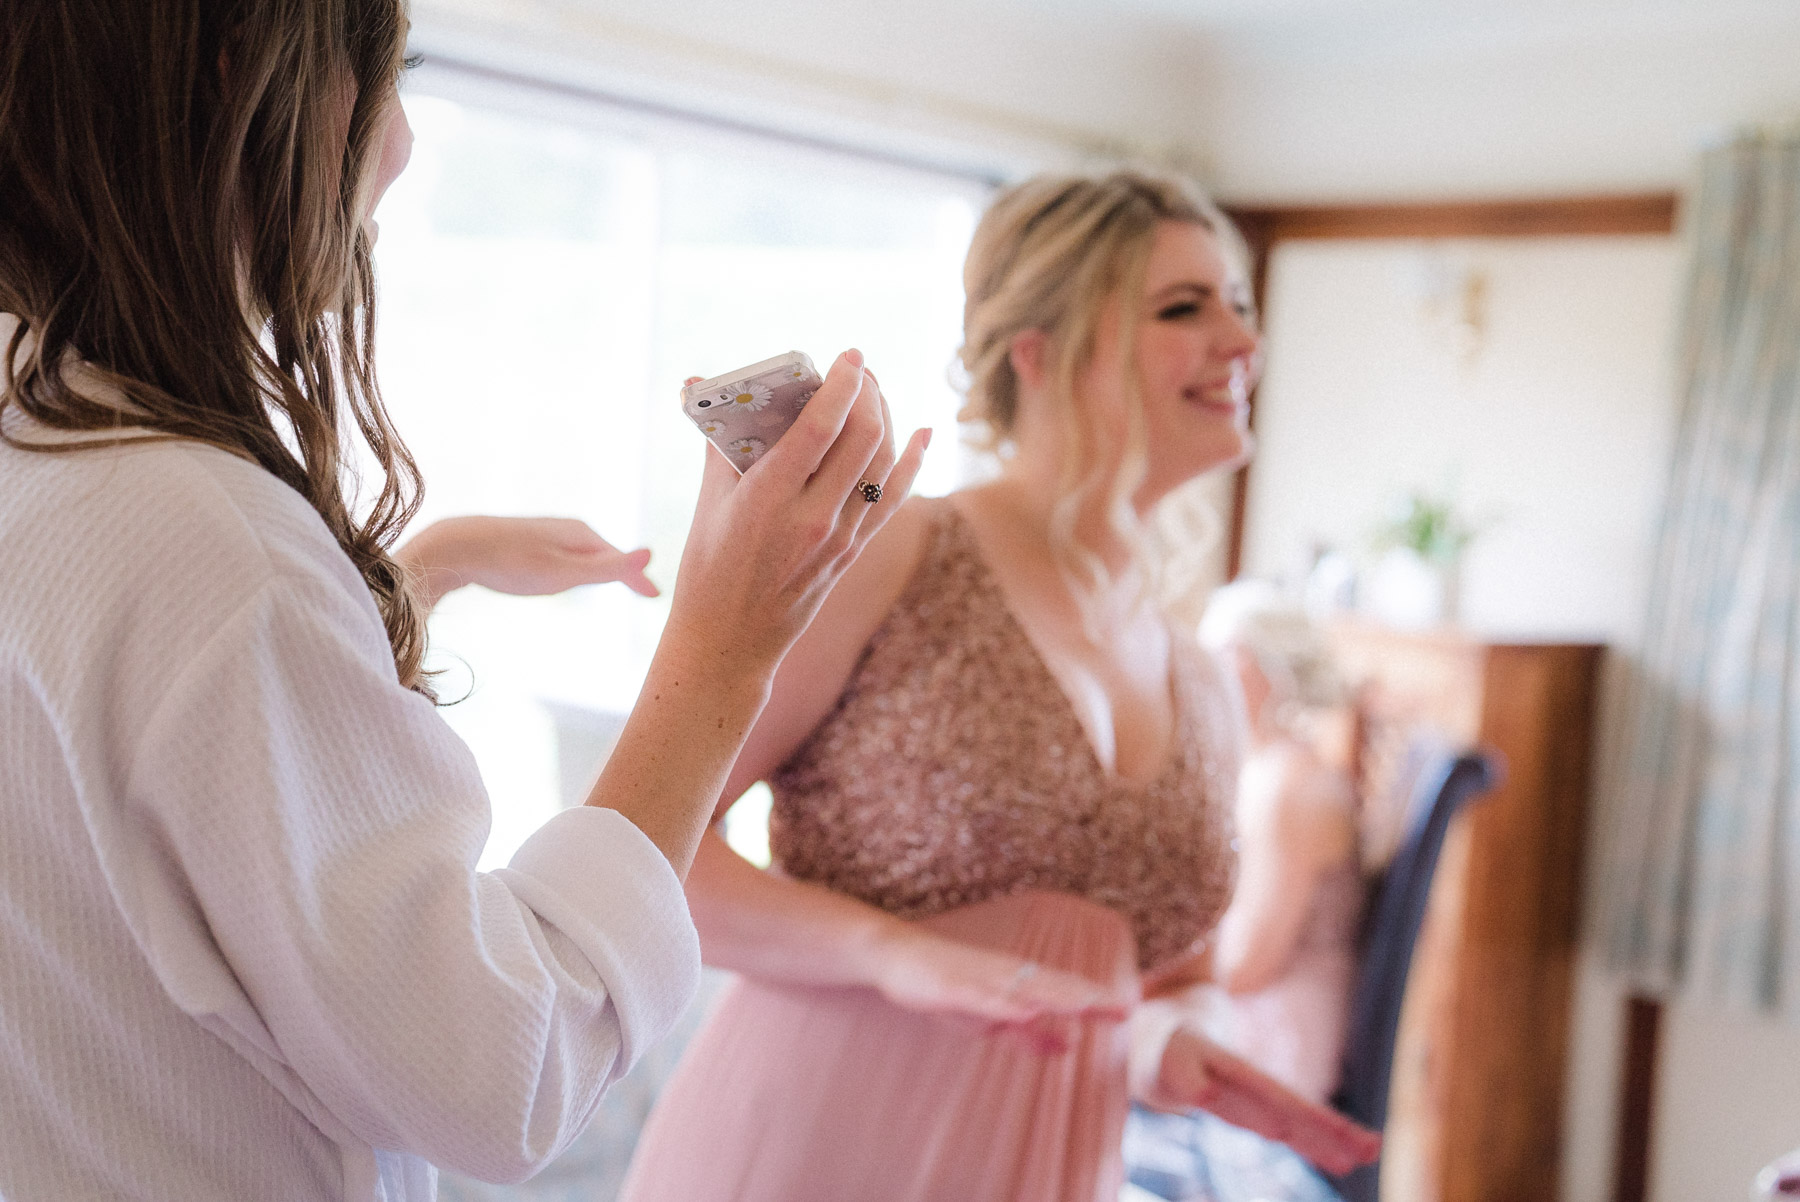 a bridesmaid practices her dance moves